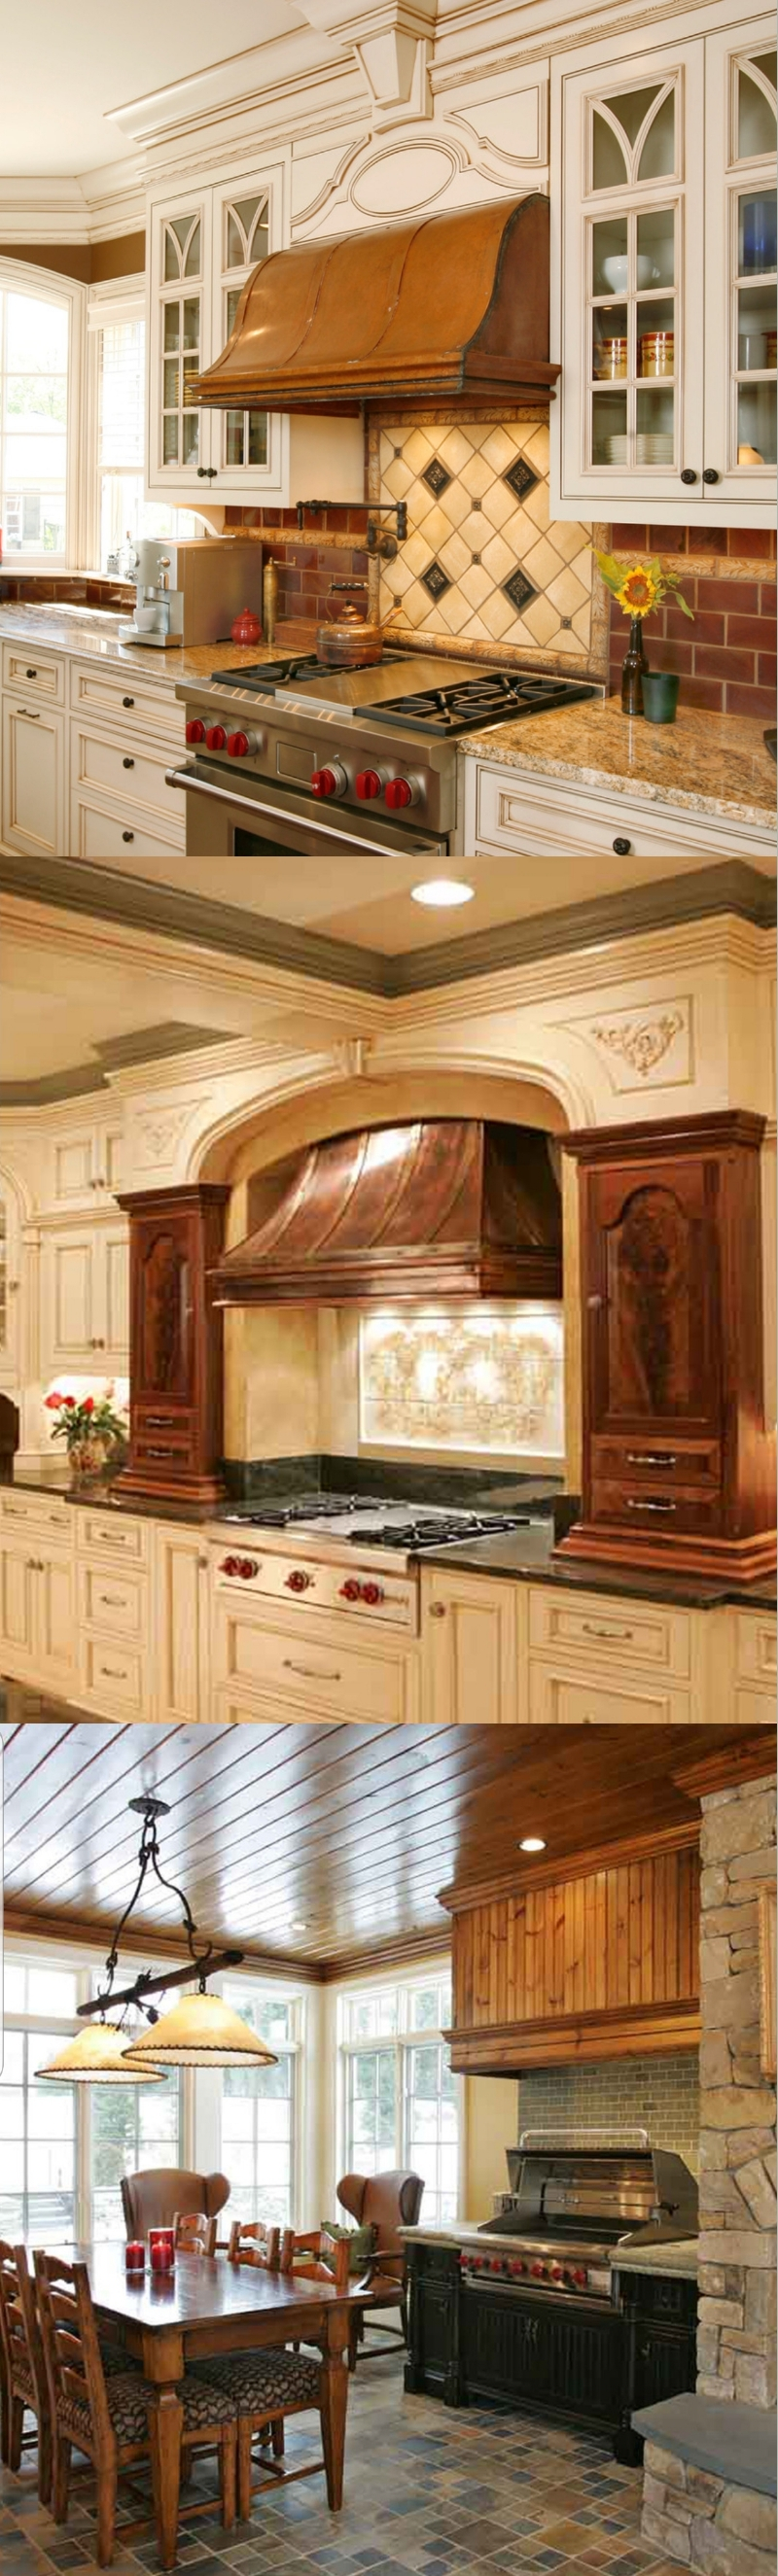 kitchen hood ideas images